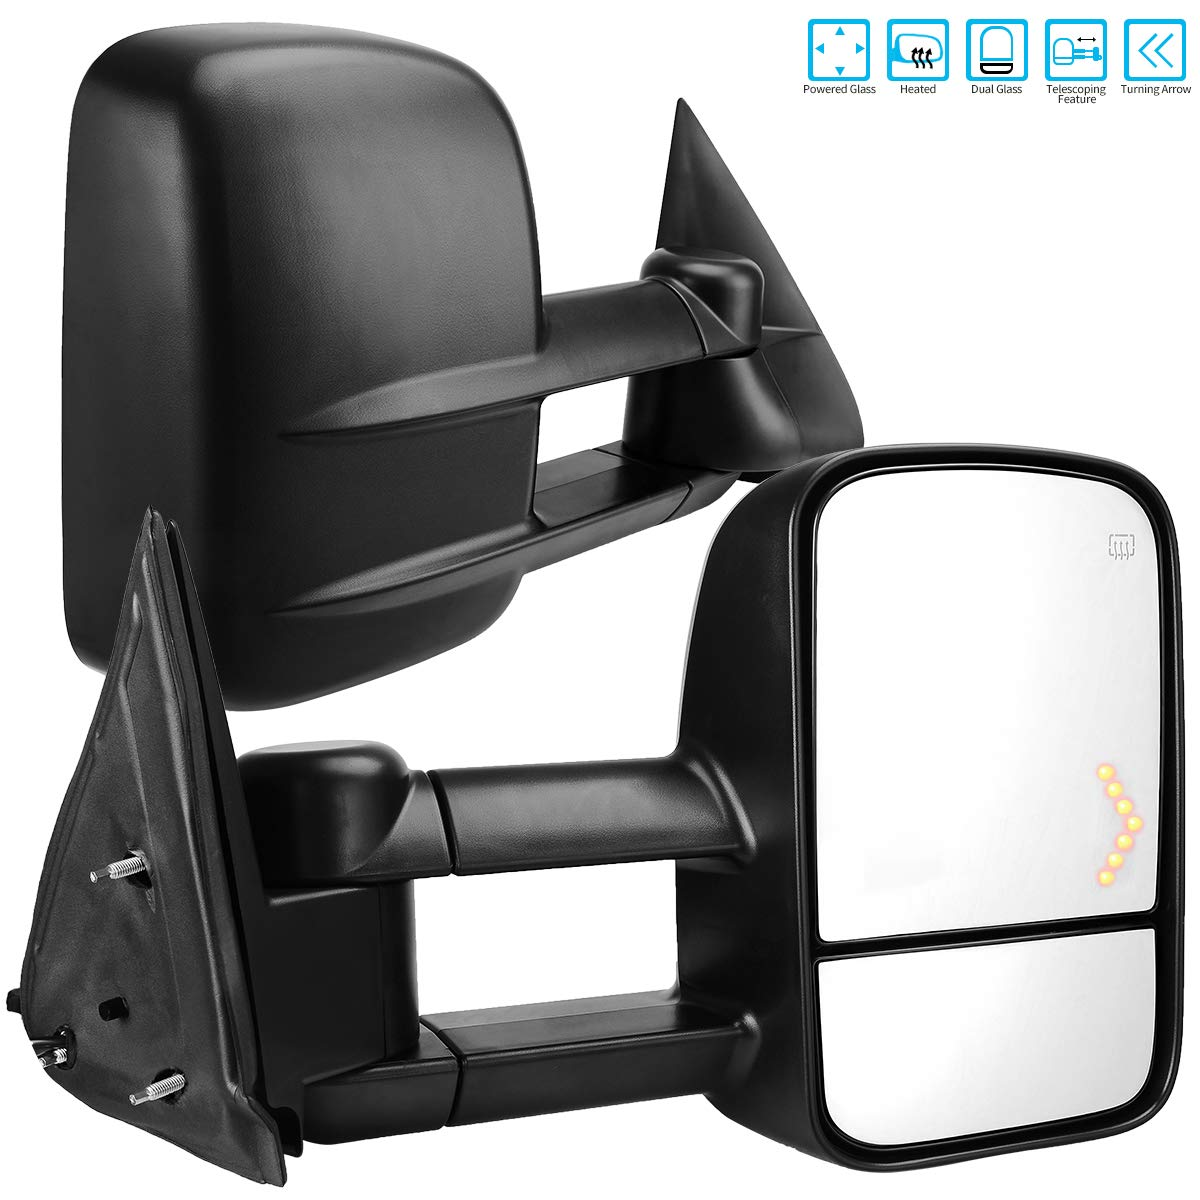 AUTOSAVER88 Towing Mirrors for 2003-2007 Chevy Silverado GMC Sierra 1500 2500 HD 3500, Power Heated Side View Tow Mirror for Tahoe Suburban Avalanche Yukon with Arrow Turn Signal Light by AUTOSAVER88